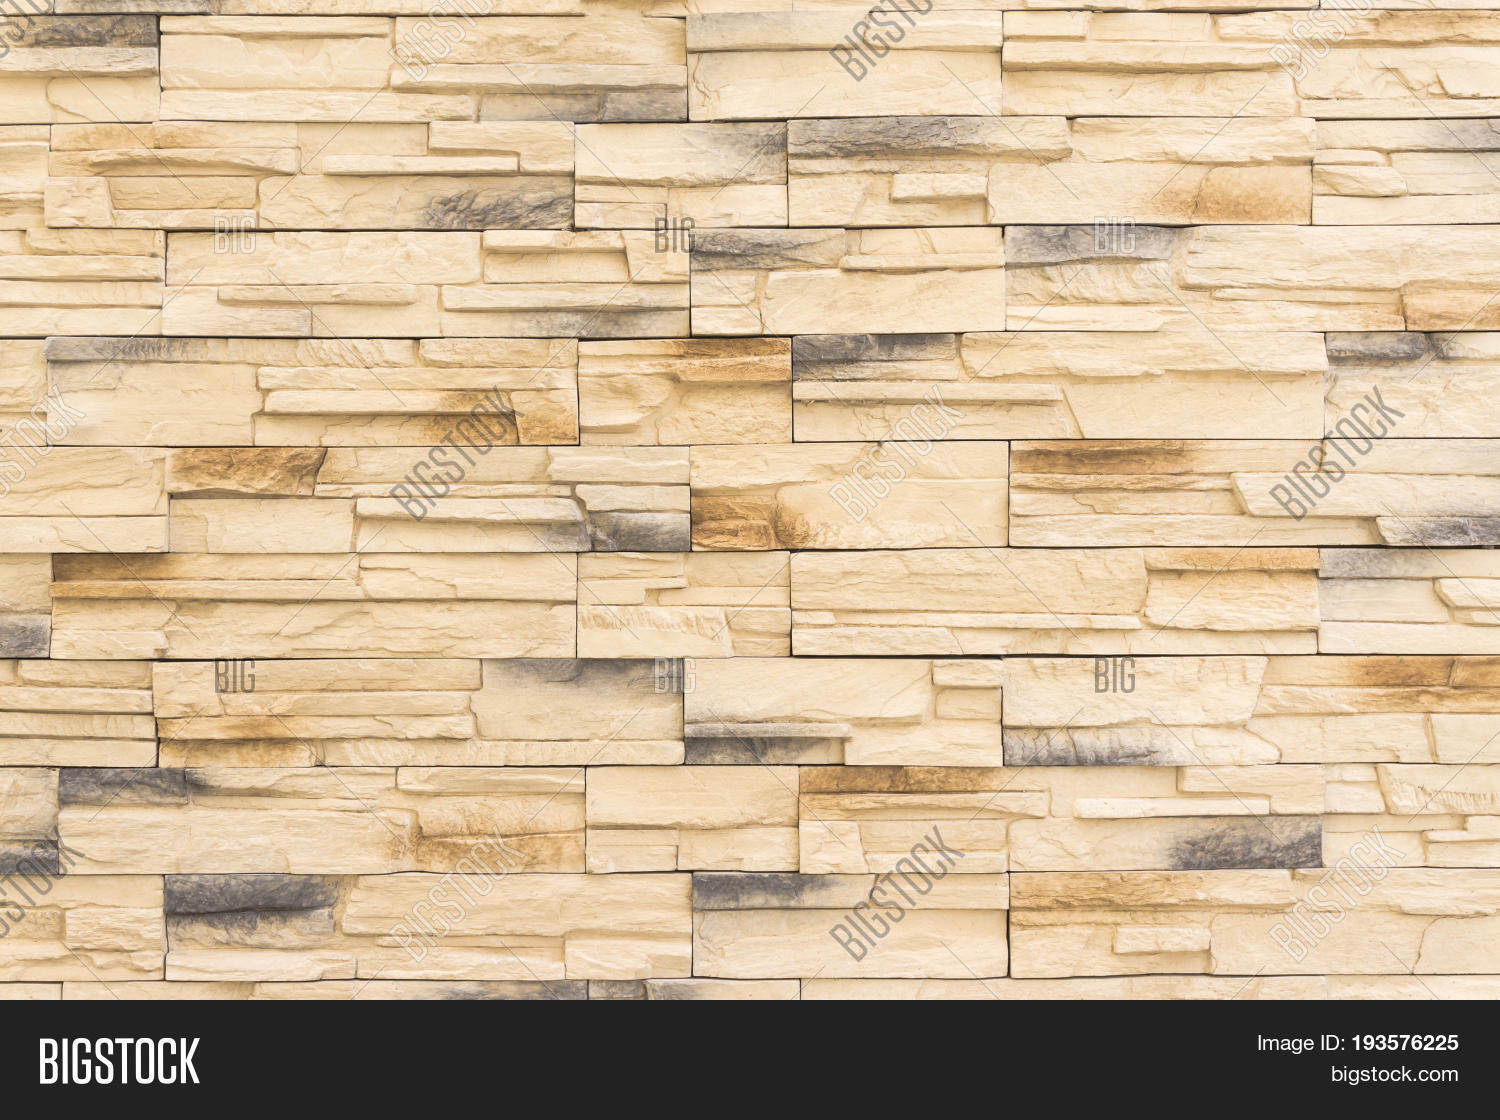 Brick Wall Background Image & Photo (Free Trial) | Bigstock